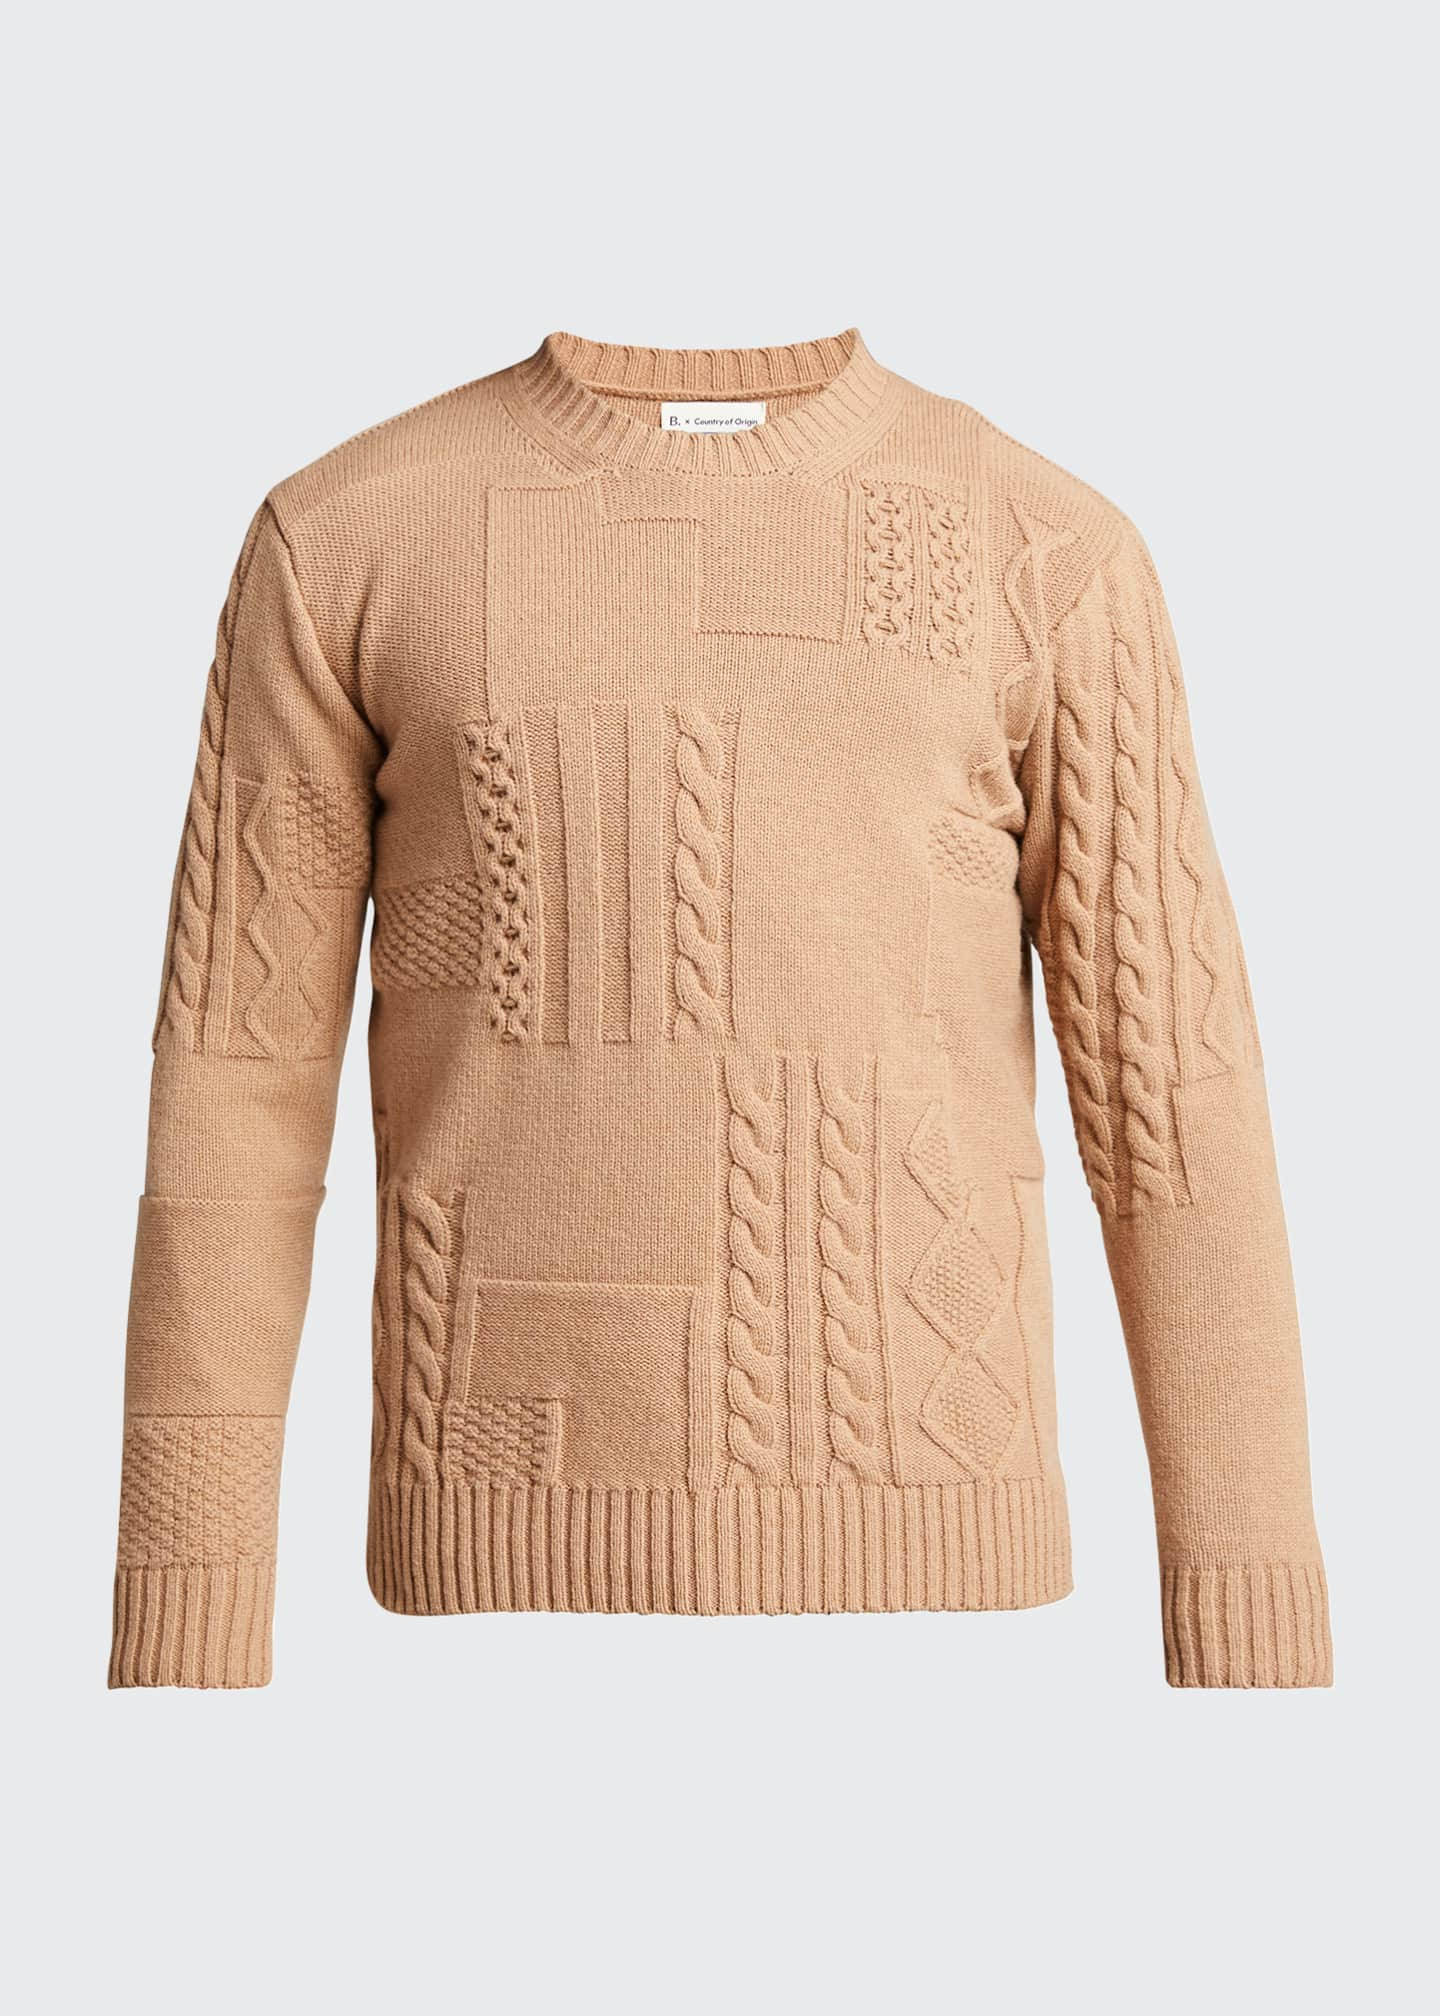 Image 5 of 5: Men's Cable-Knit Patchwork Crewneck Sweater